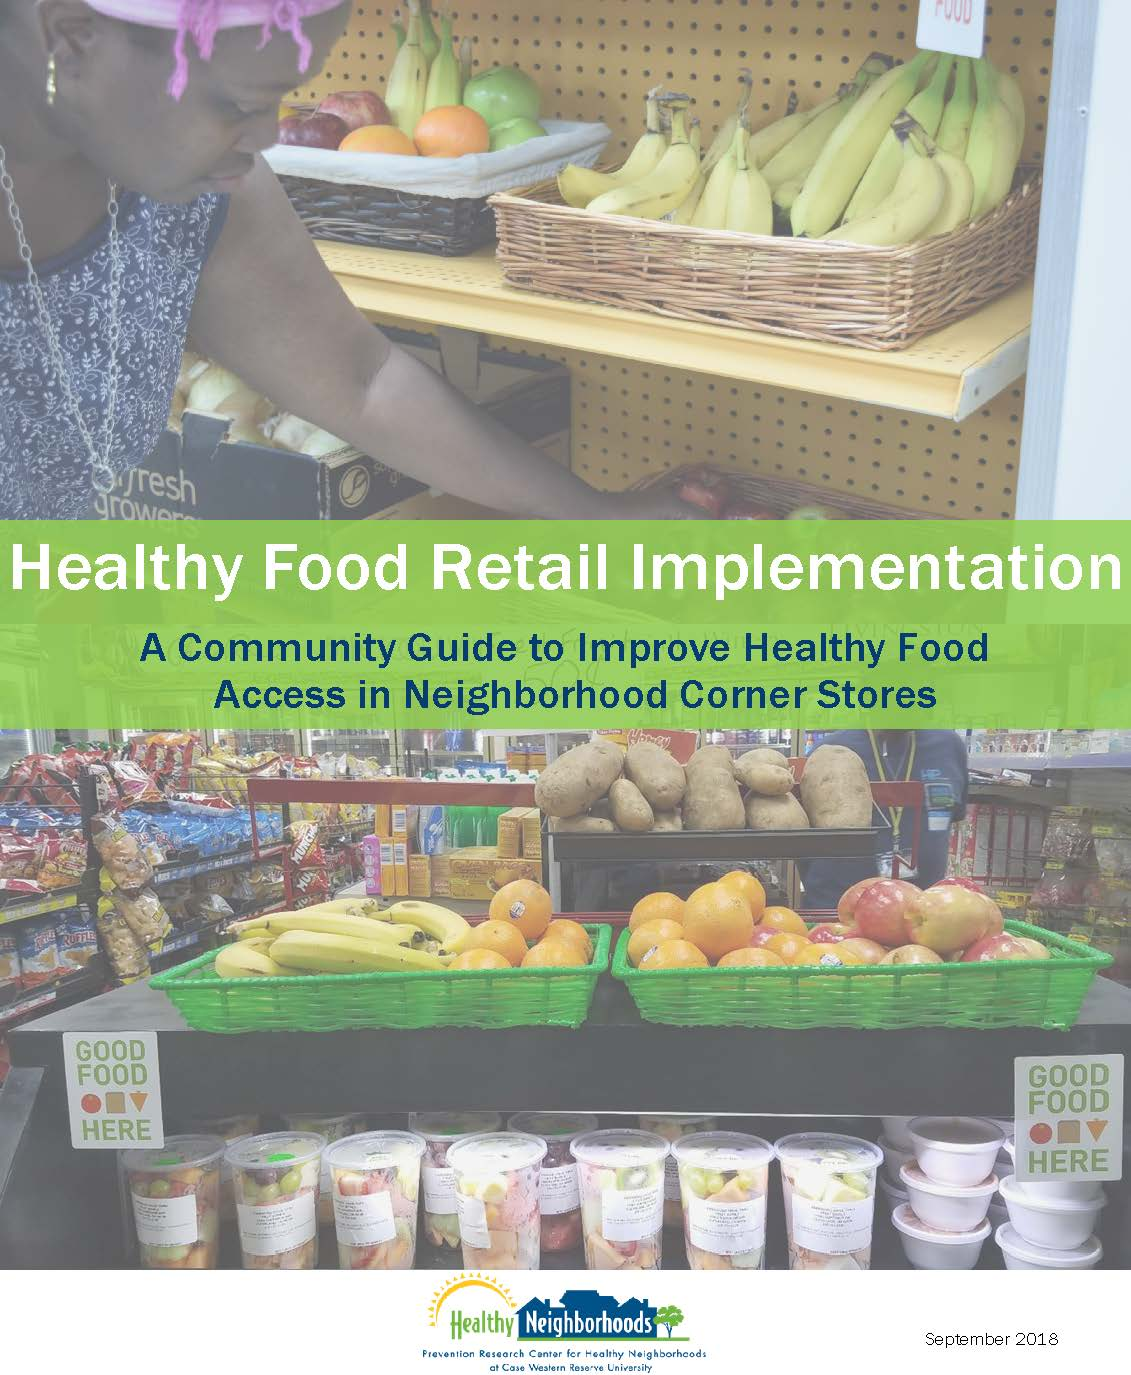 Healthy Food Retail Implementation Guide cover